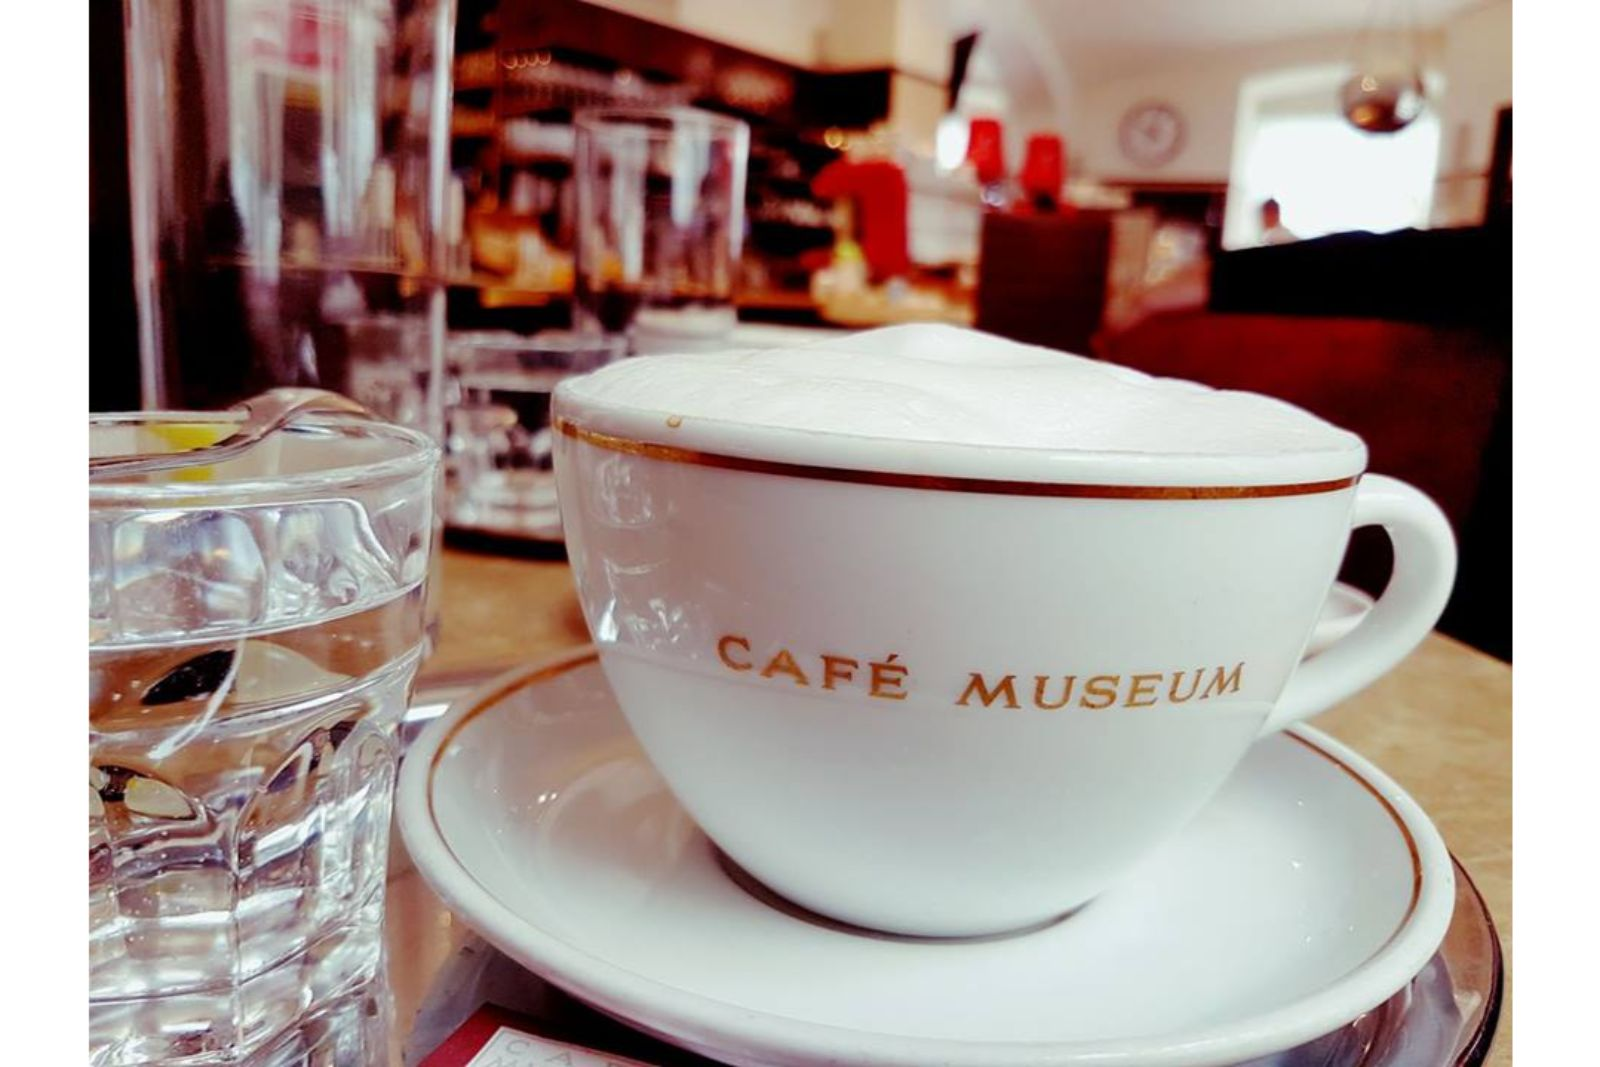 cafe museum 8